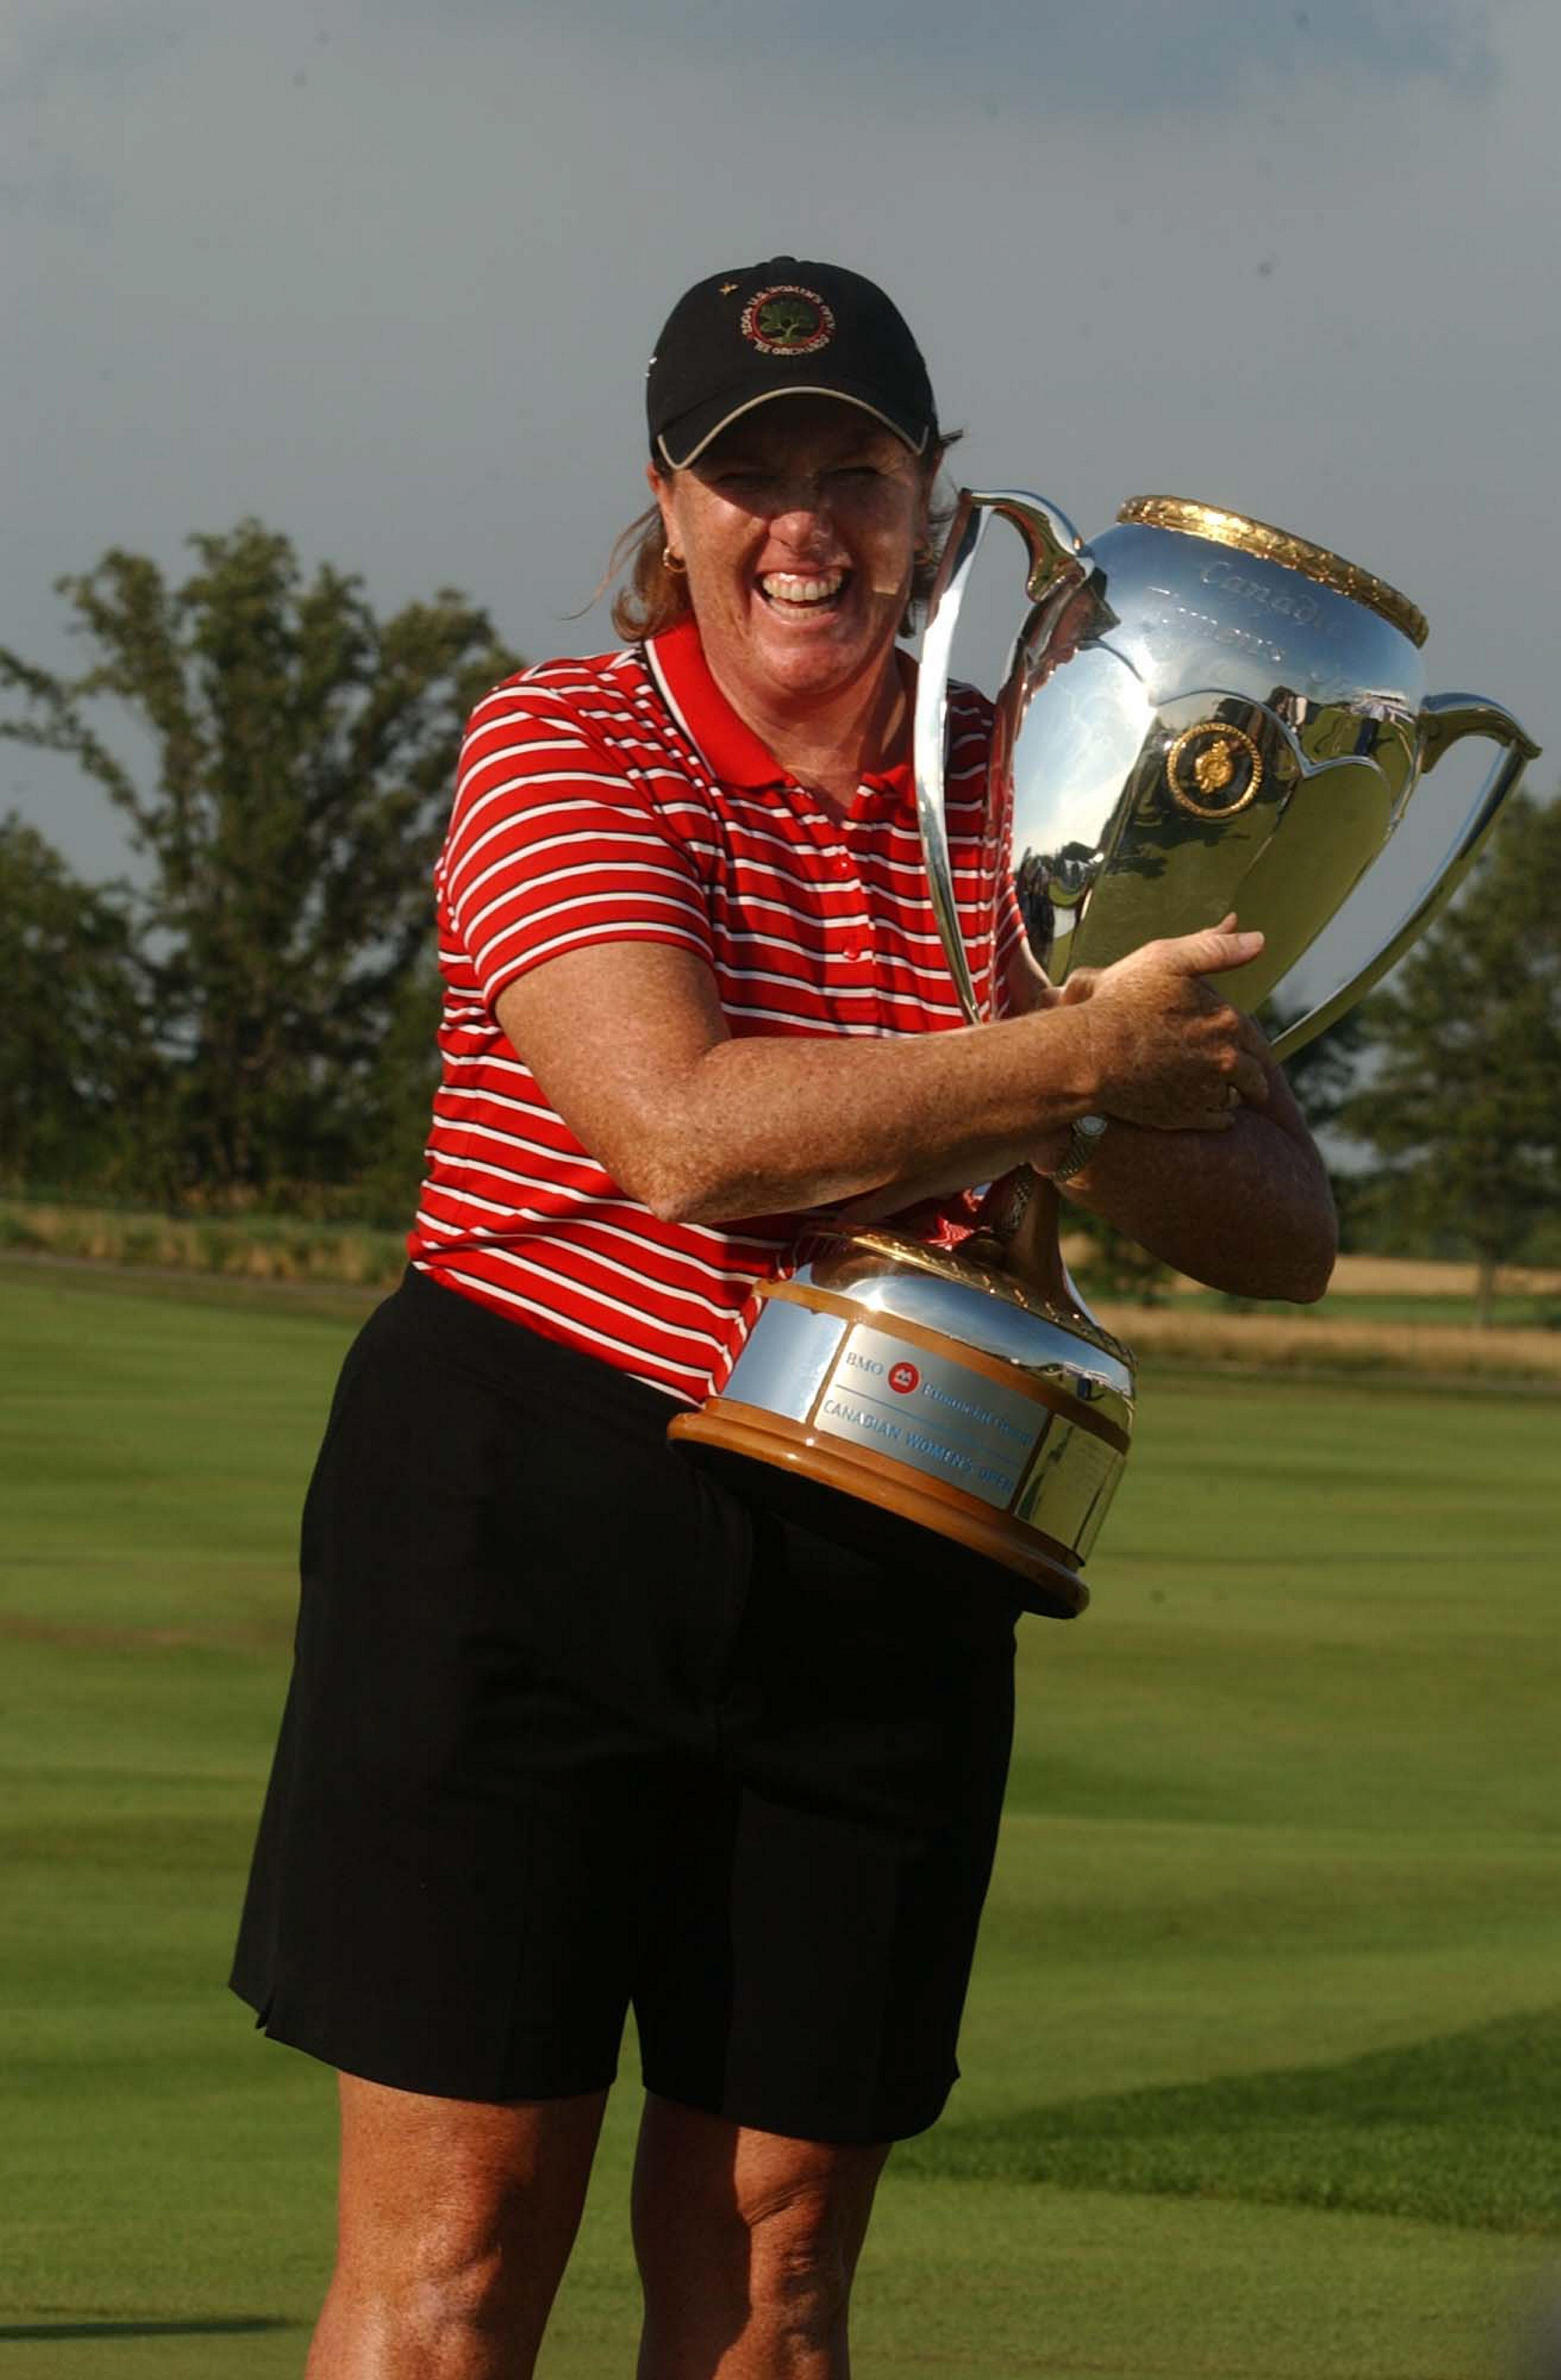 Meg Mallon set the course record of 65 at the Legends of Niagara Battlefield course while winning the Canadian Women's Open in 2004.